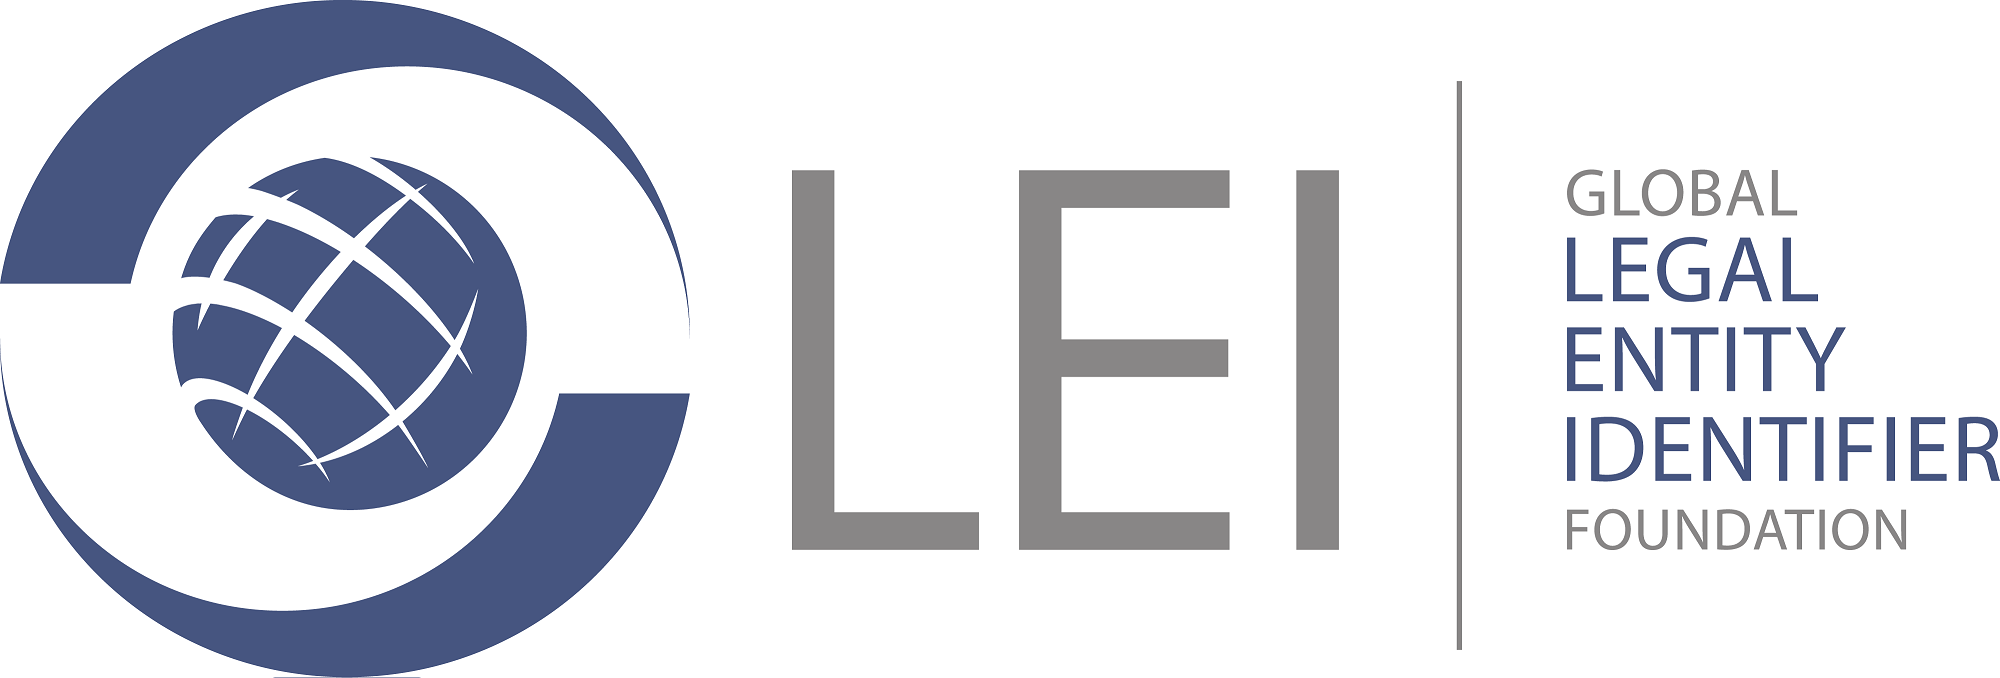 GLEIF Initiative to Boost Financial Inclusion for African SMEs